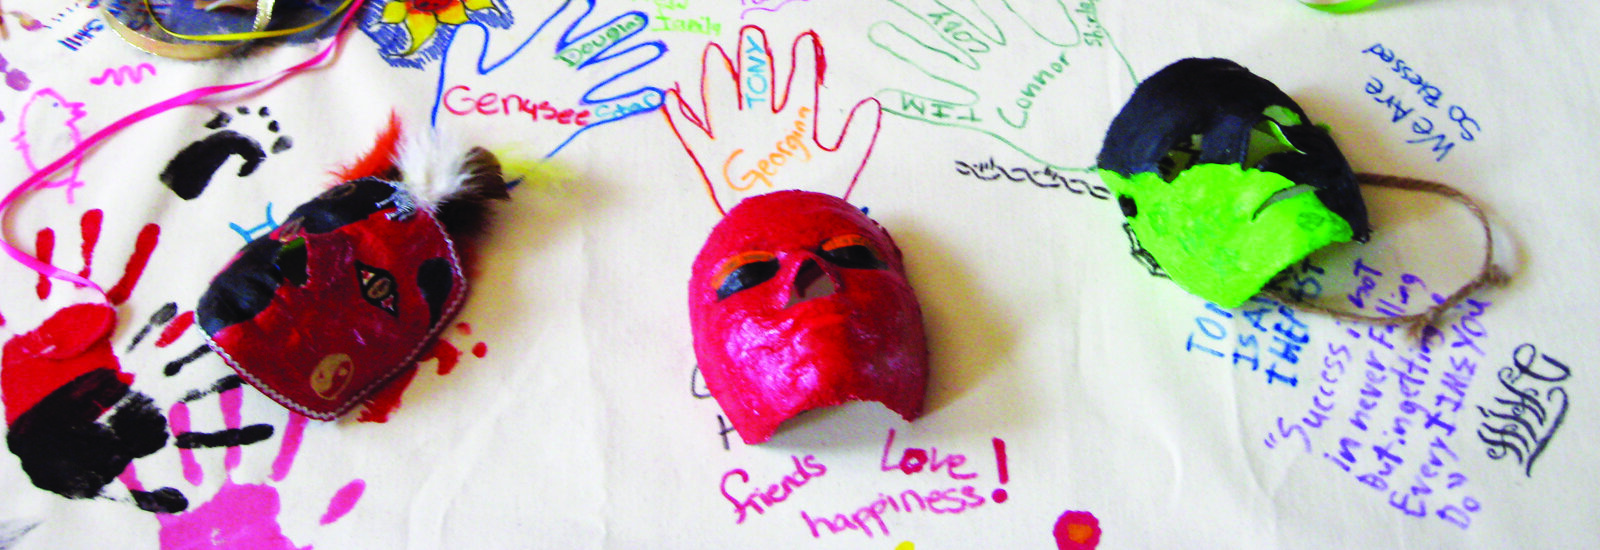 With assistance from Arts in Society, Hope West helps kids through grief.